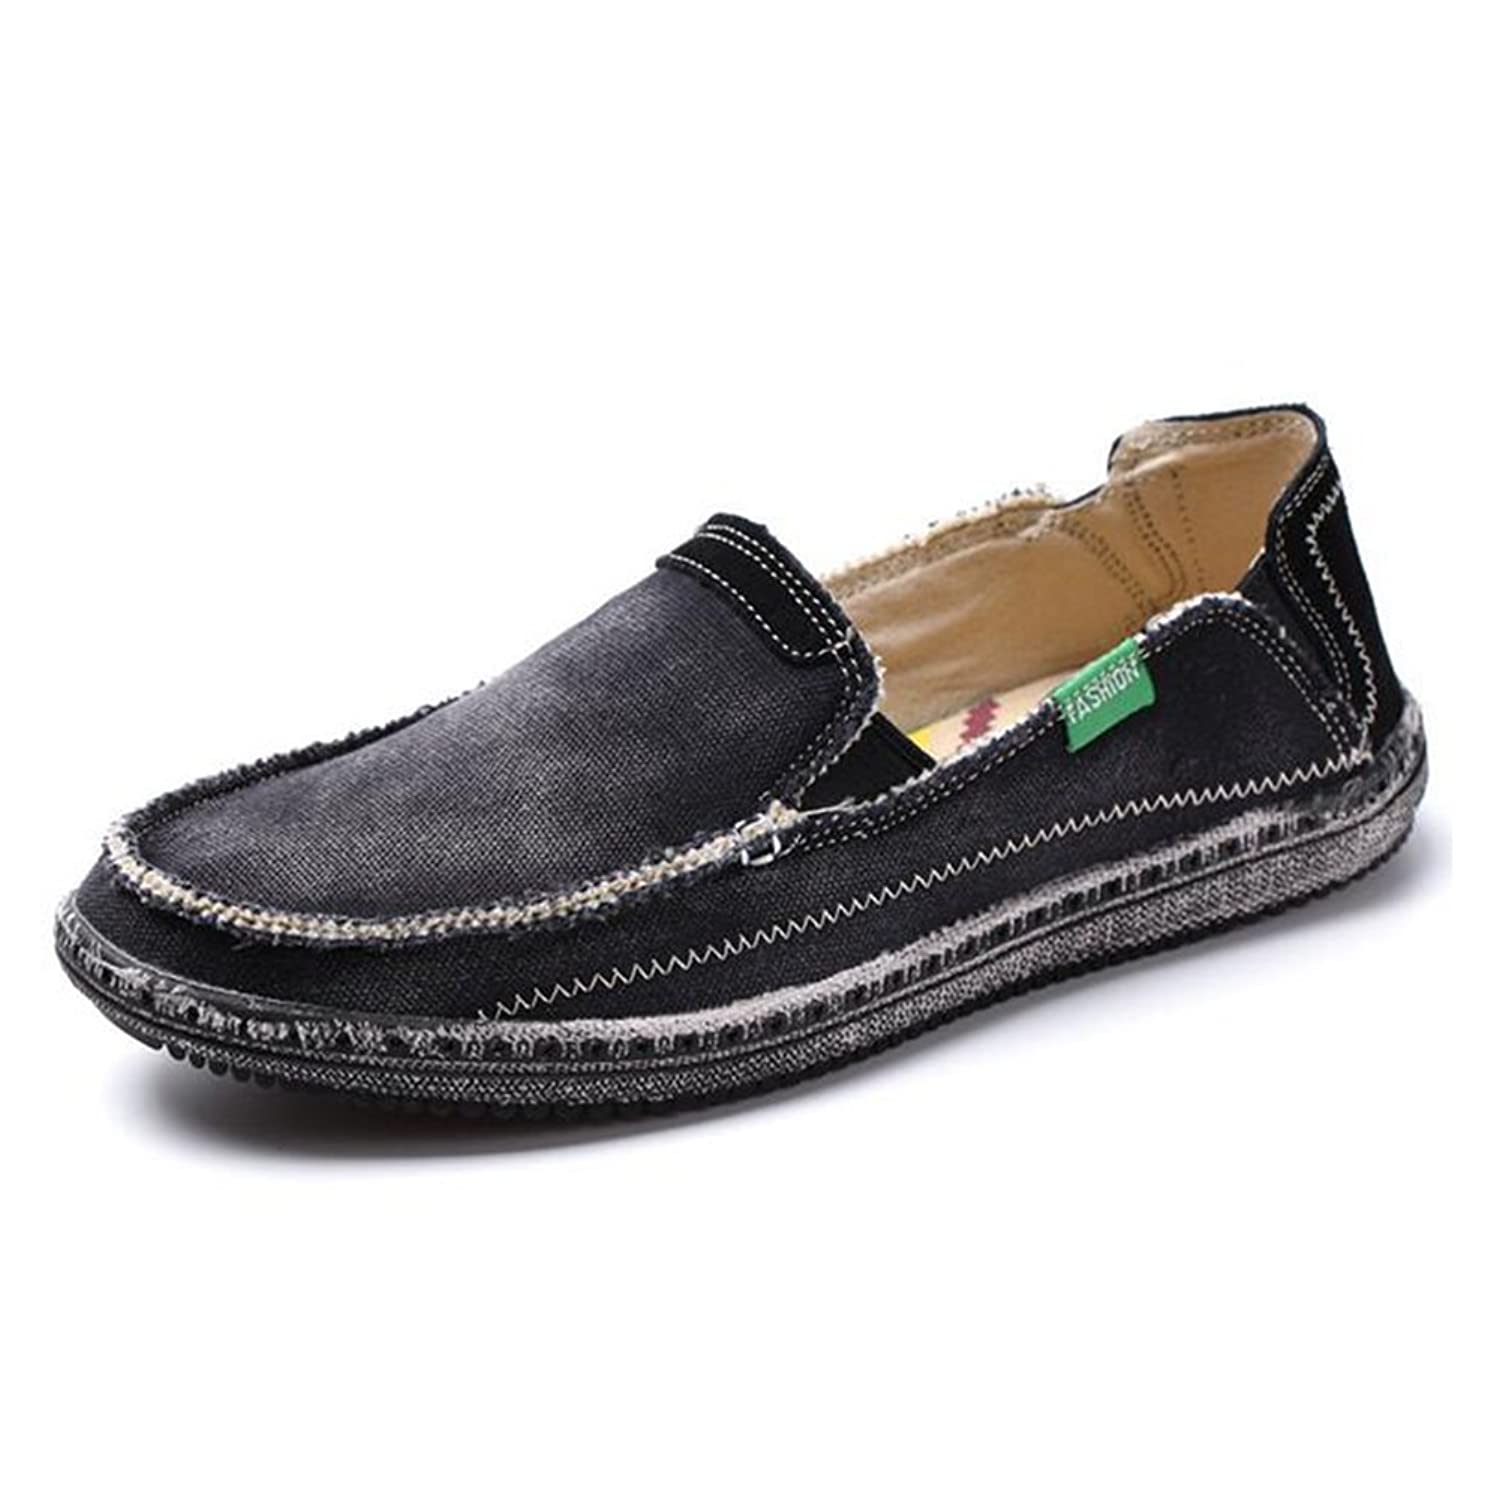 Sandalen Mens Canvas Breathable Bequeme Slip-on Sommer Mode Bettler Stil Freizeitschuhe,Black,42